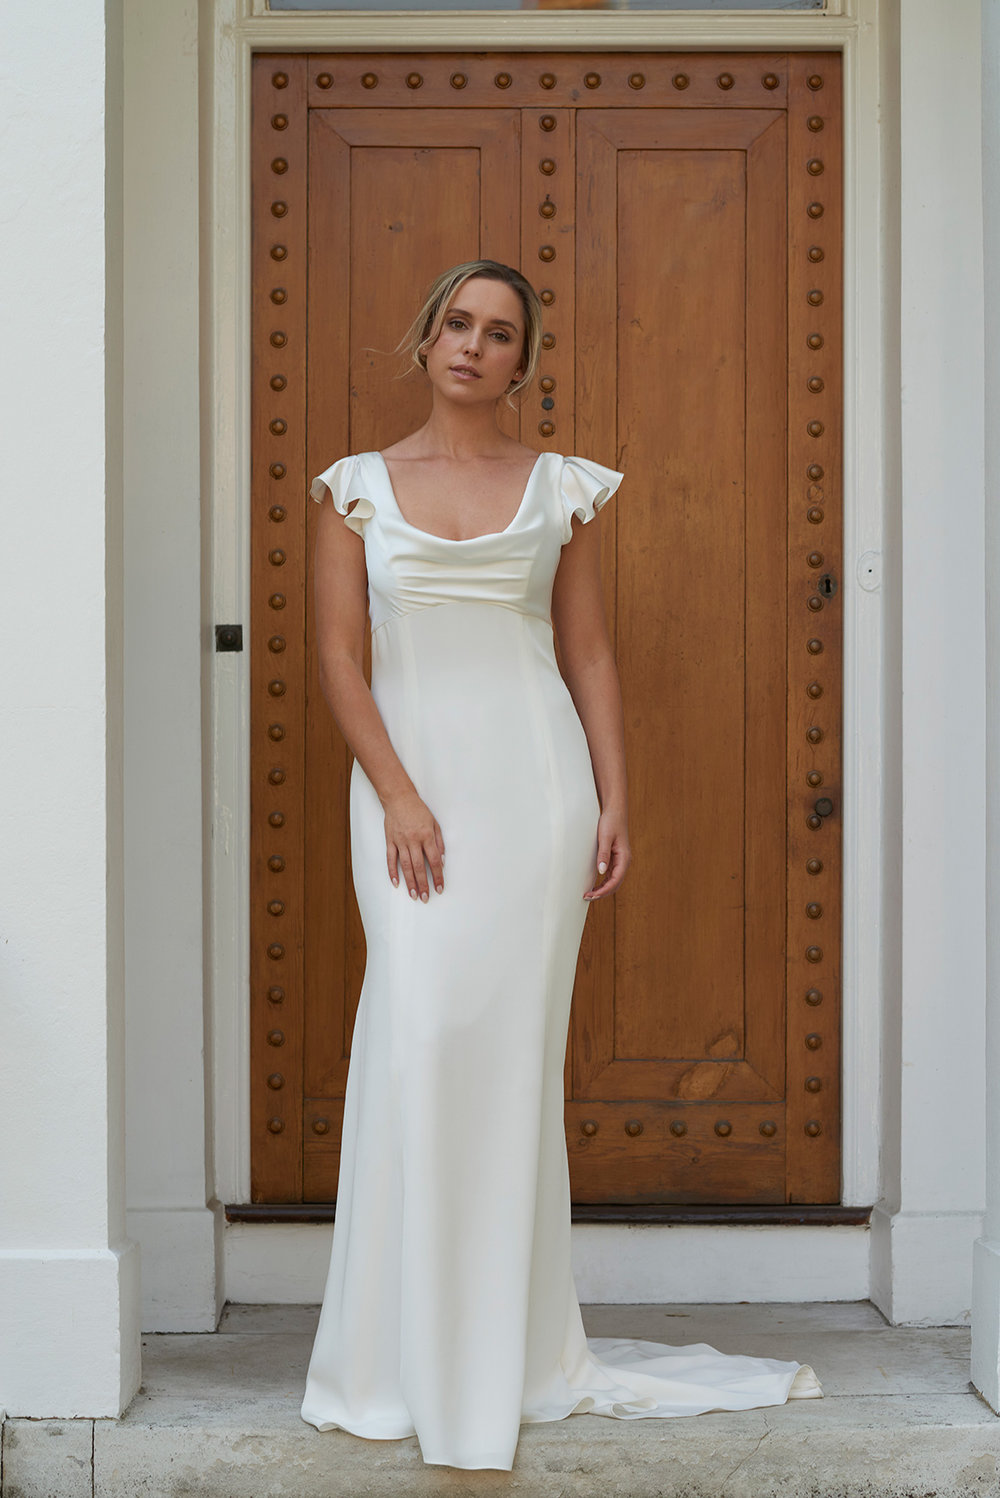 Willa_dress_doorfront-web.jpg